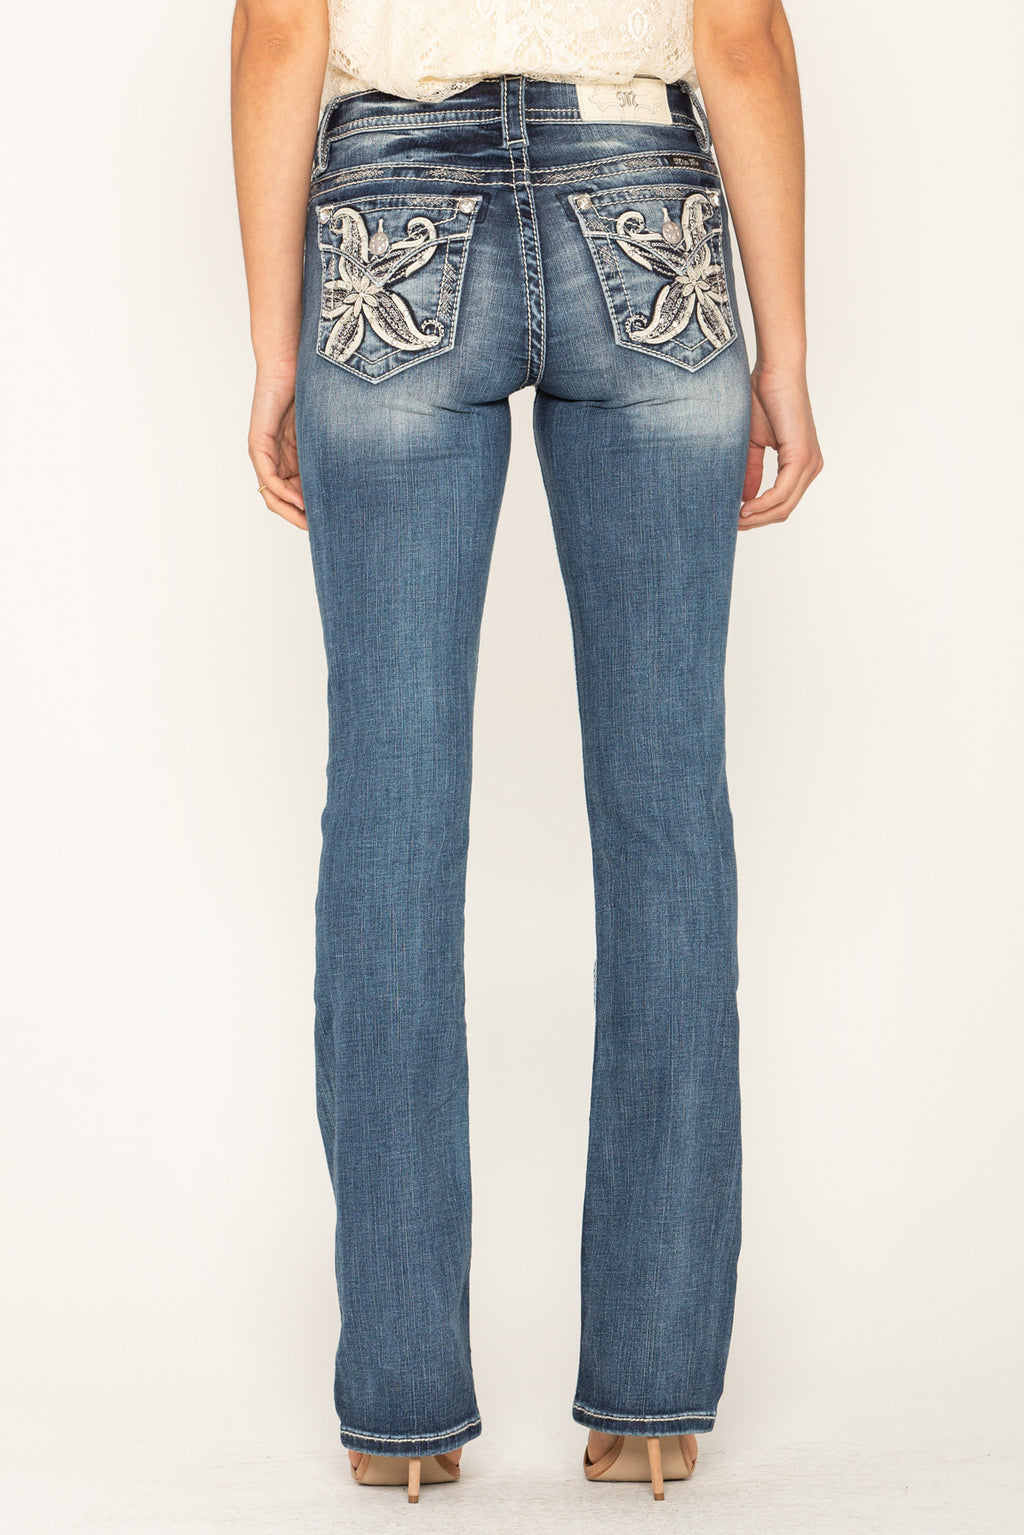 ab1114c964a IN THE TROPICS SLIM BOOTCUT JEANS